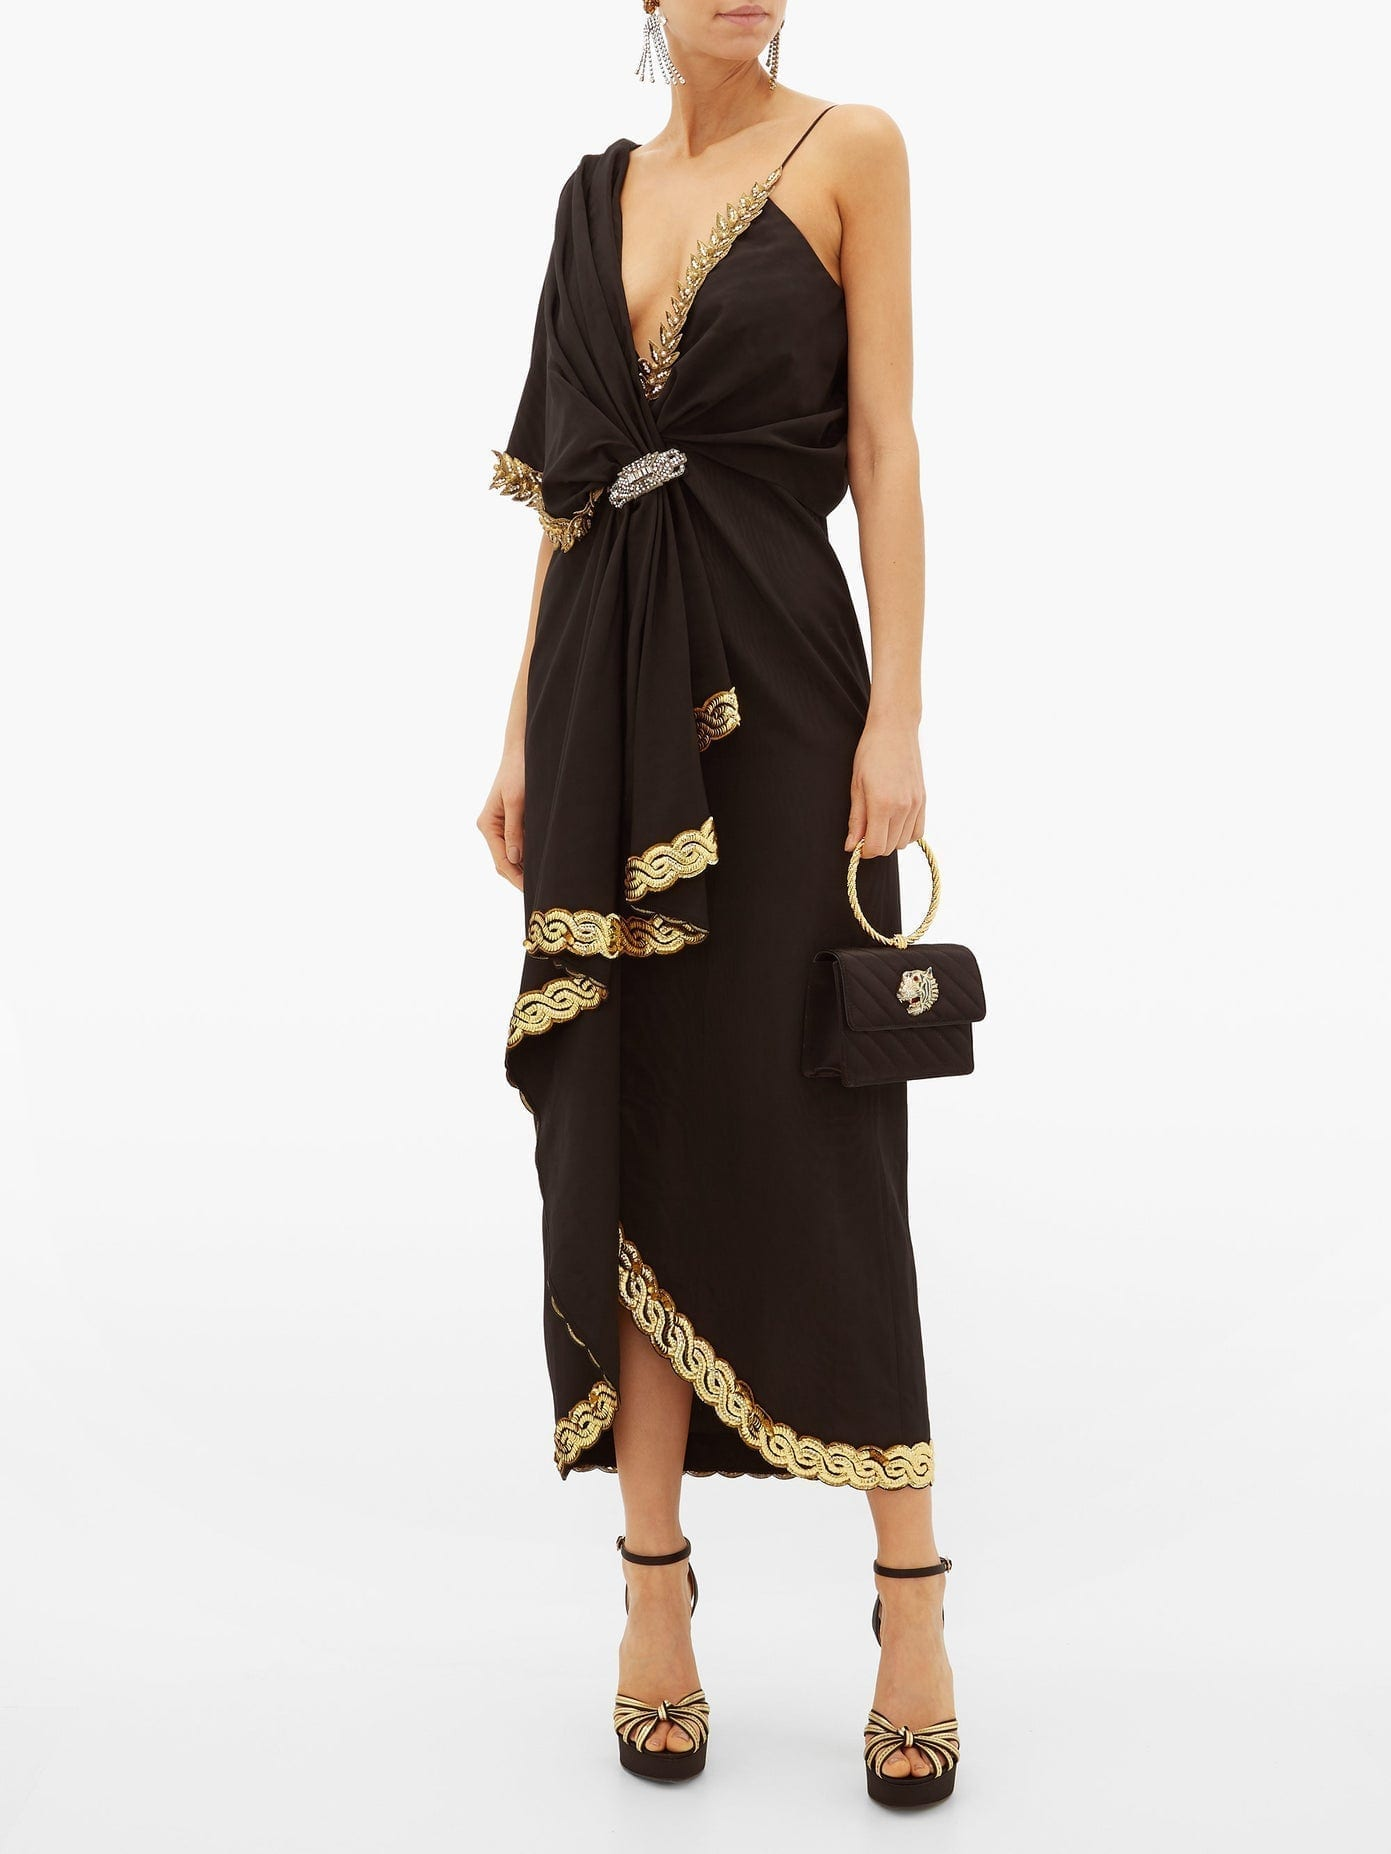 GUCCI Naomi Crystal-Embellished Moire Dress